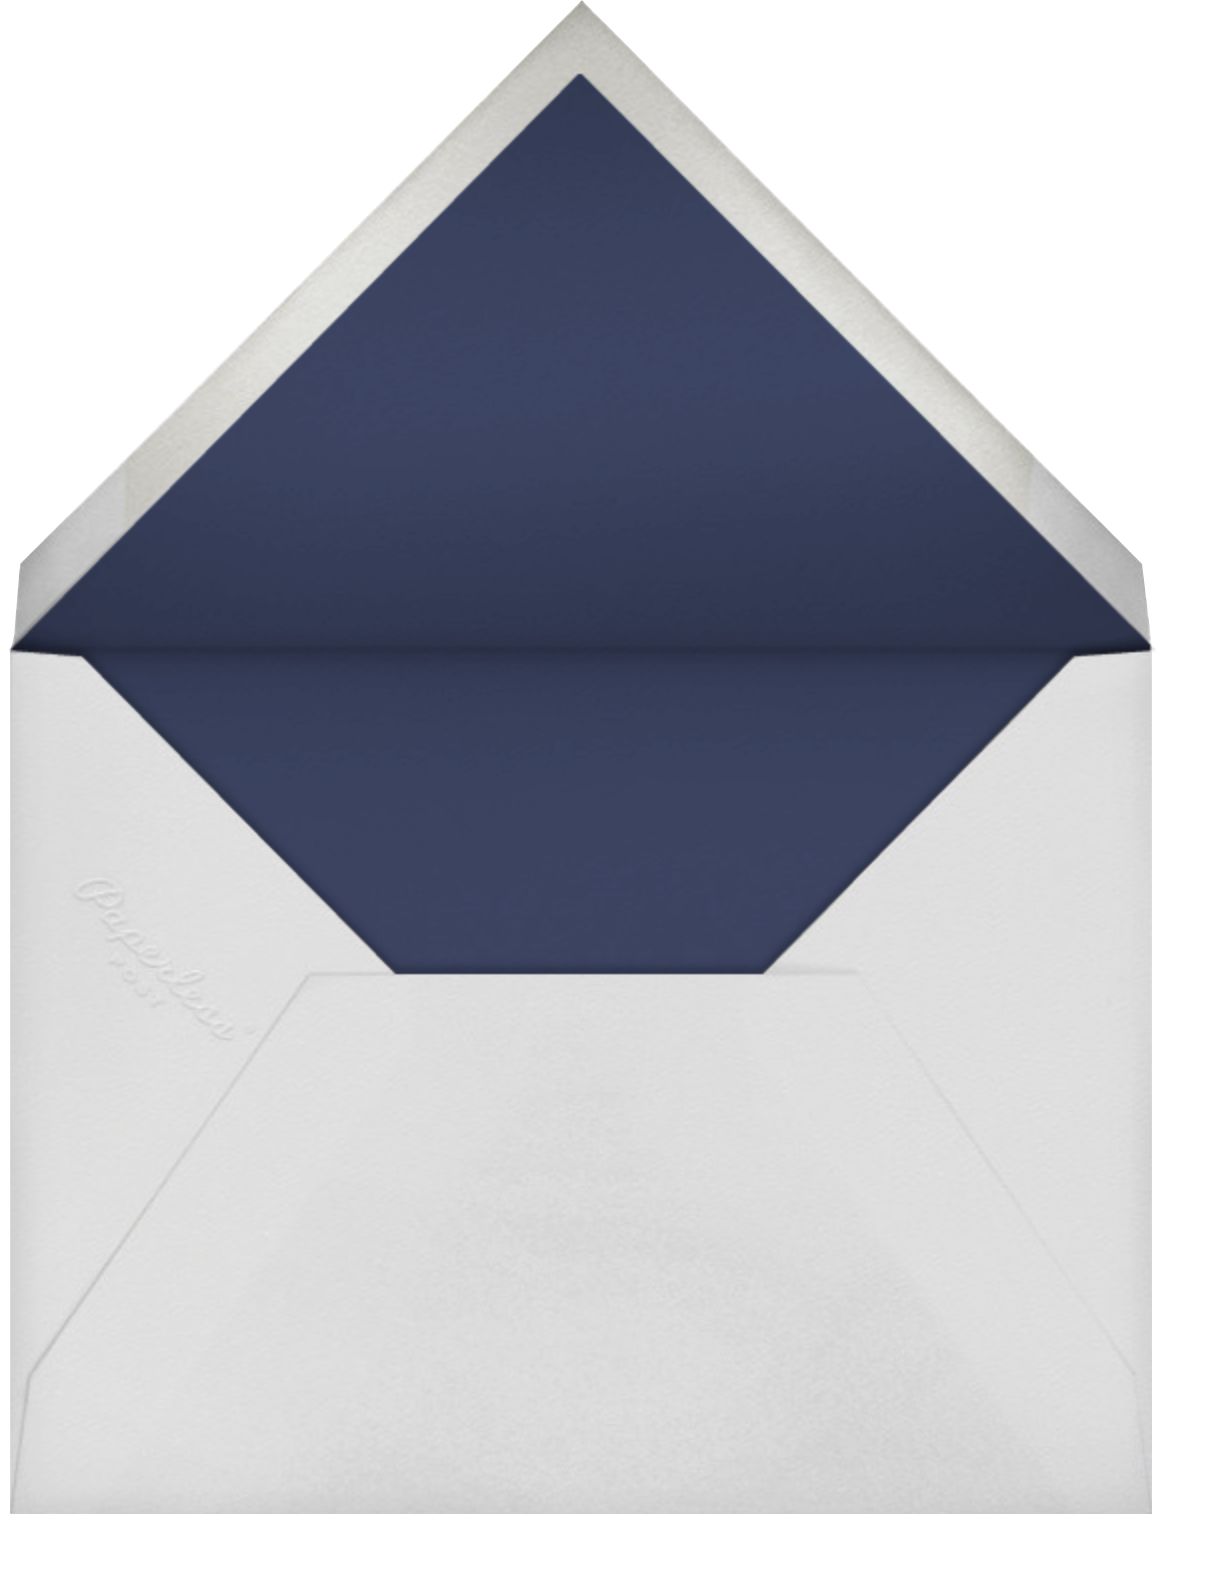 Pacific Palisades - Newport Blue - Paperless Post - Personalized stationery - envelope back